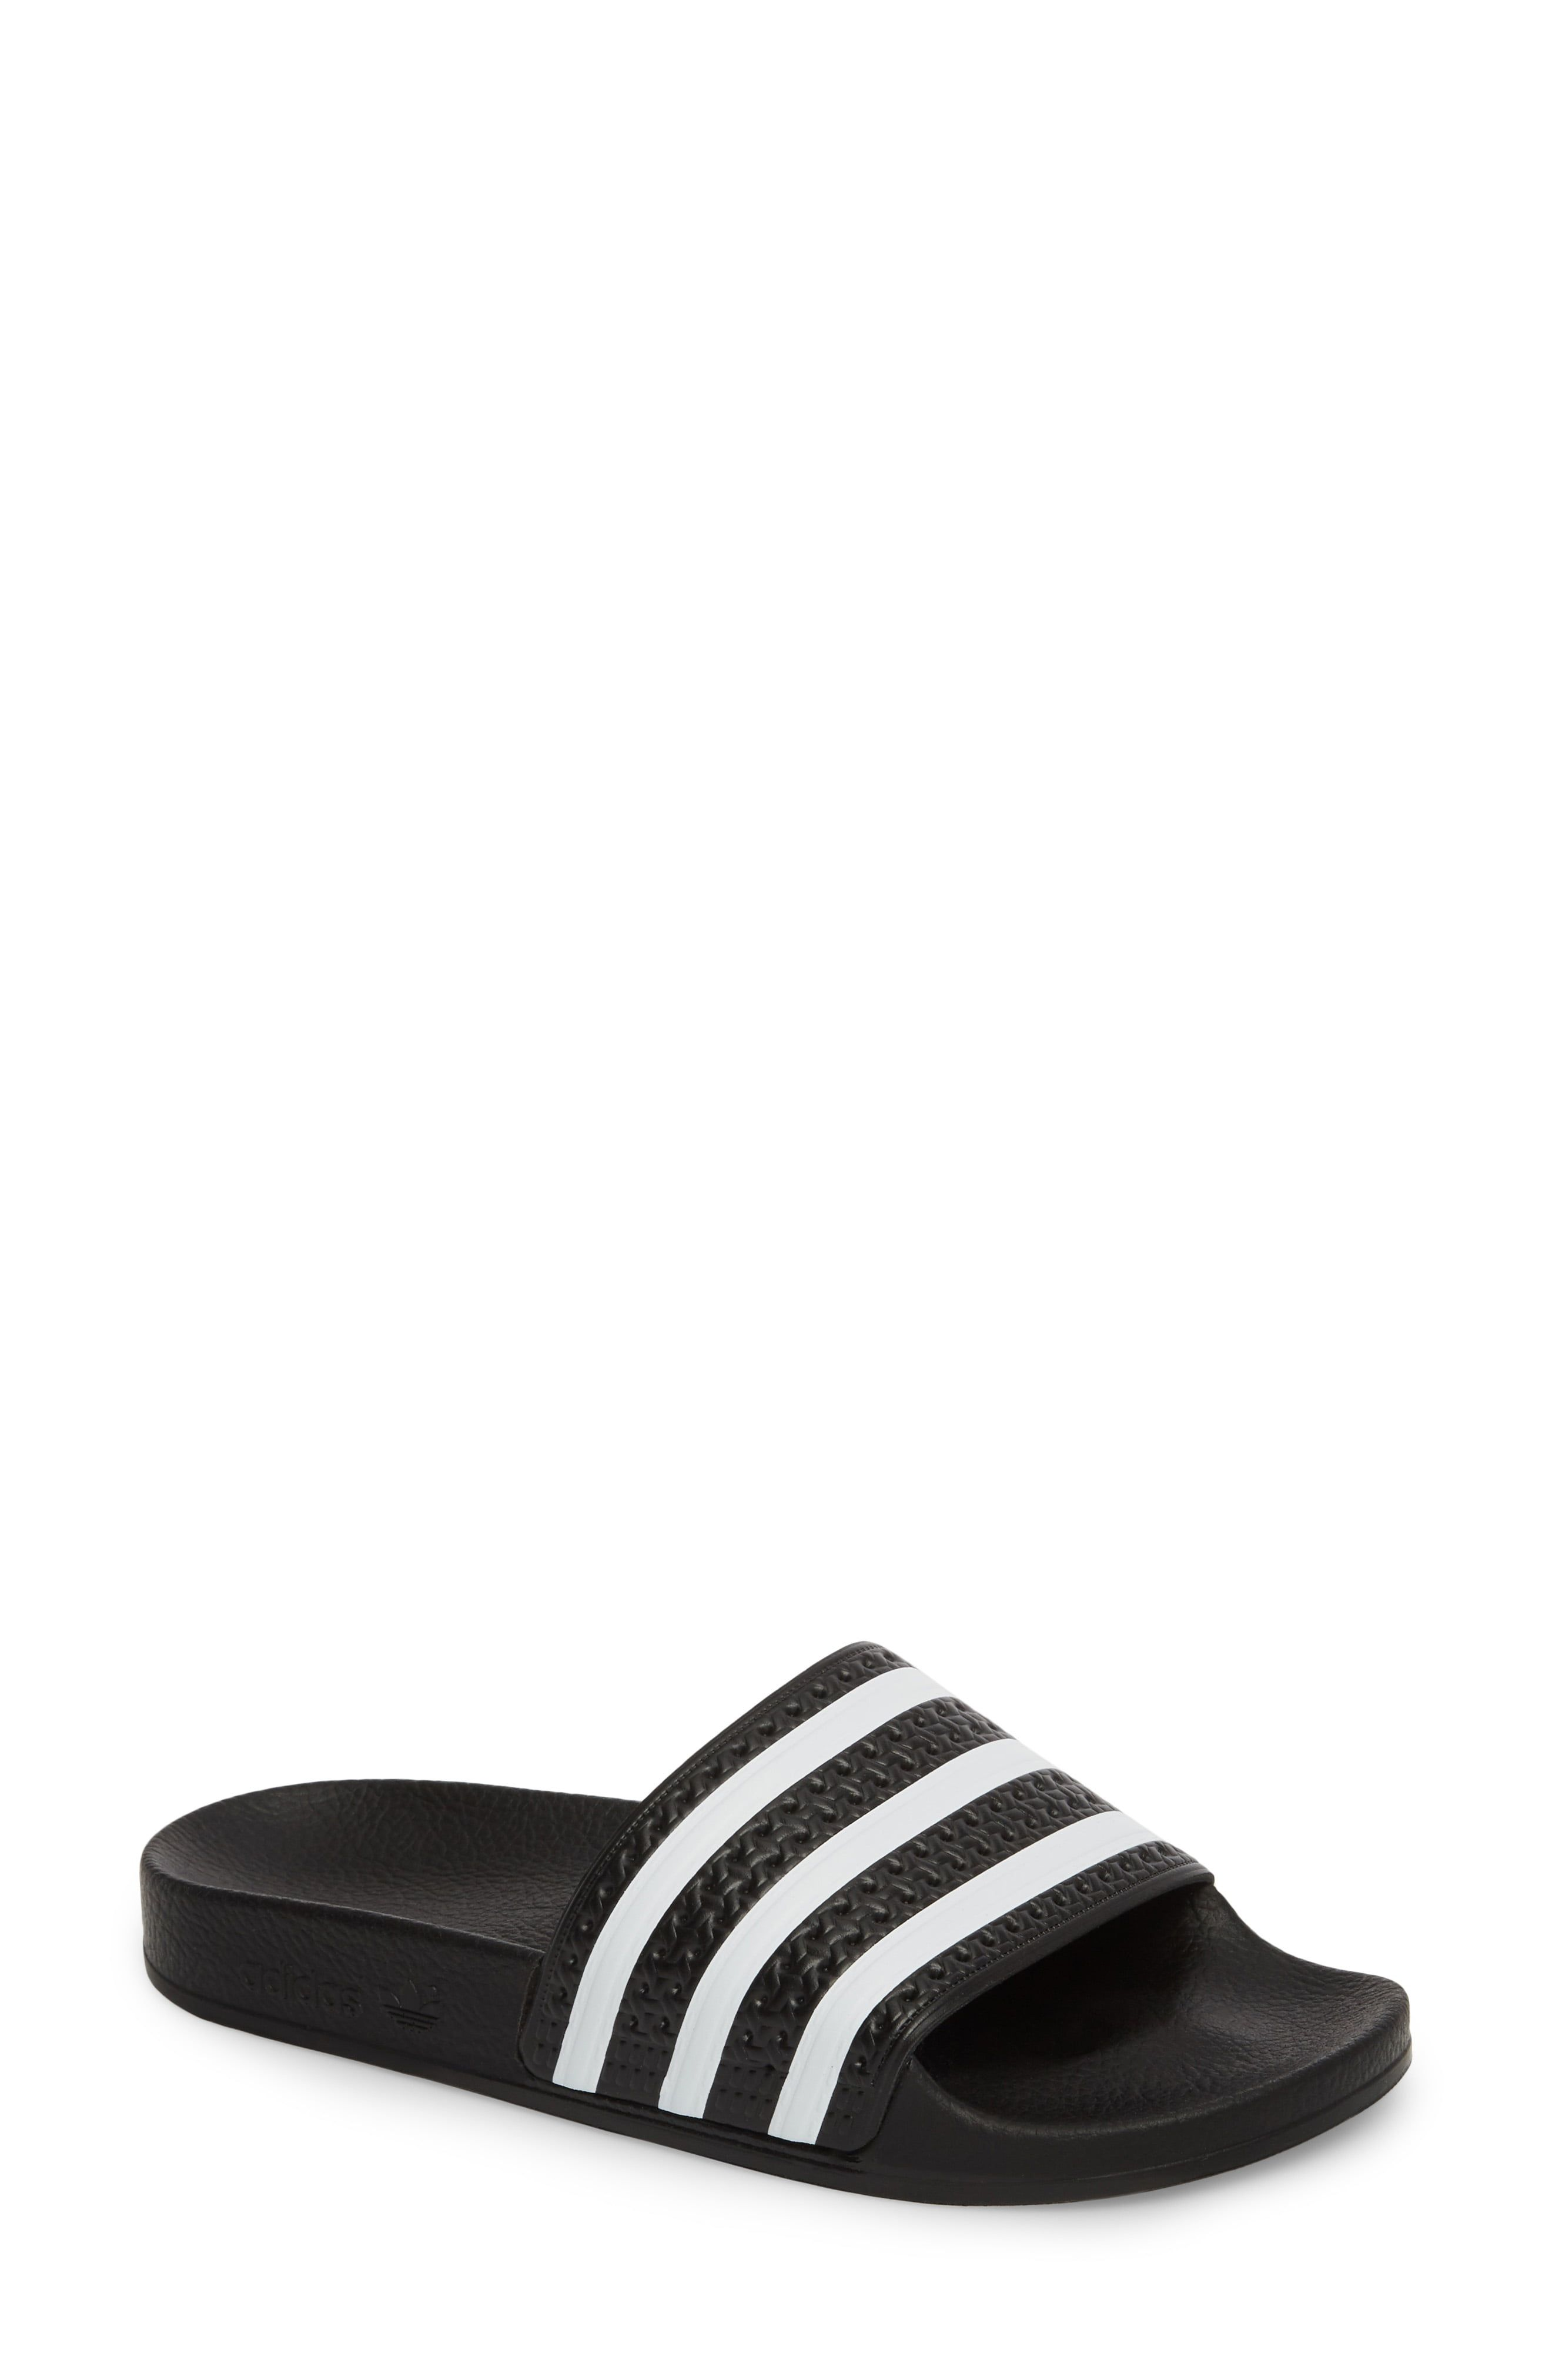 adidas 'Adilette' Slide Sandal (Women | Slide sandals